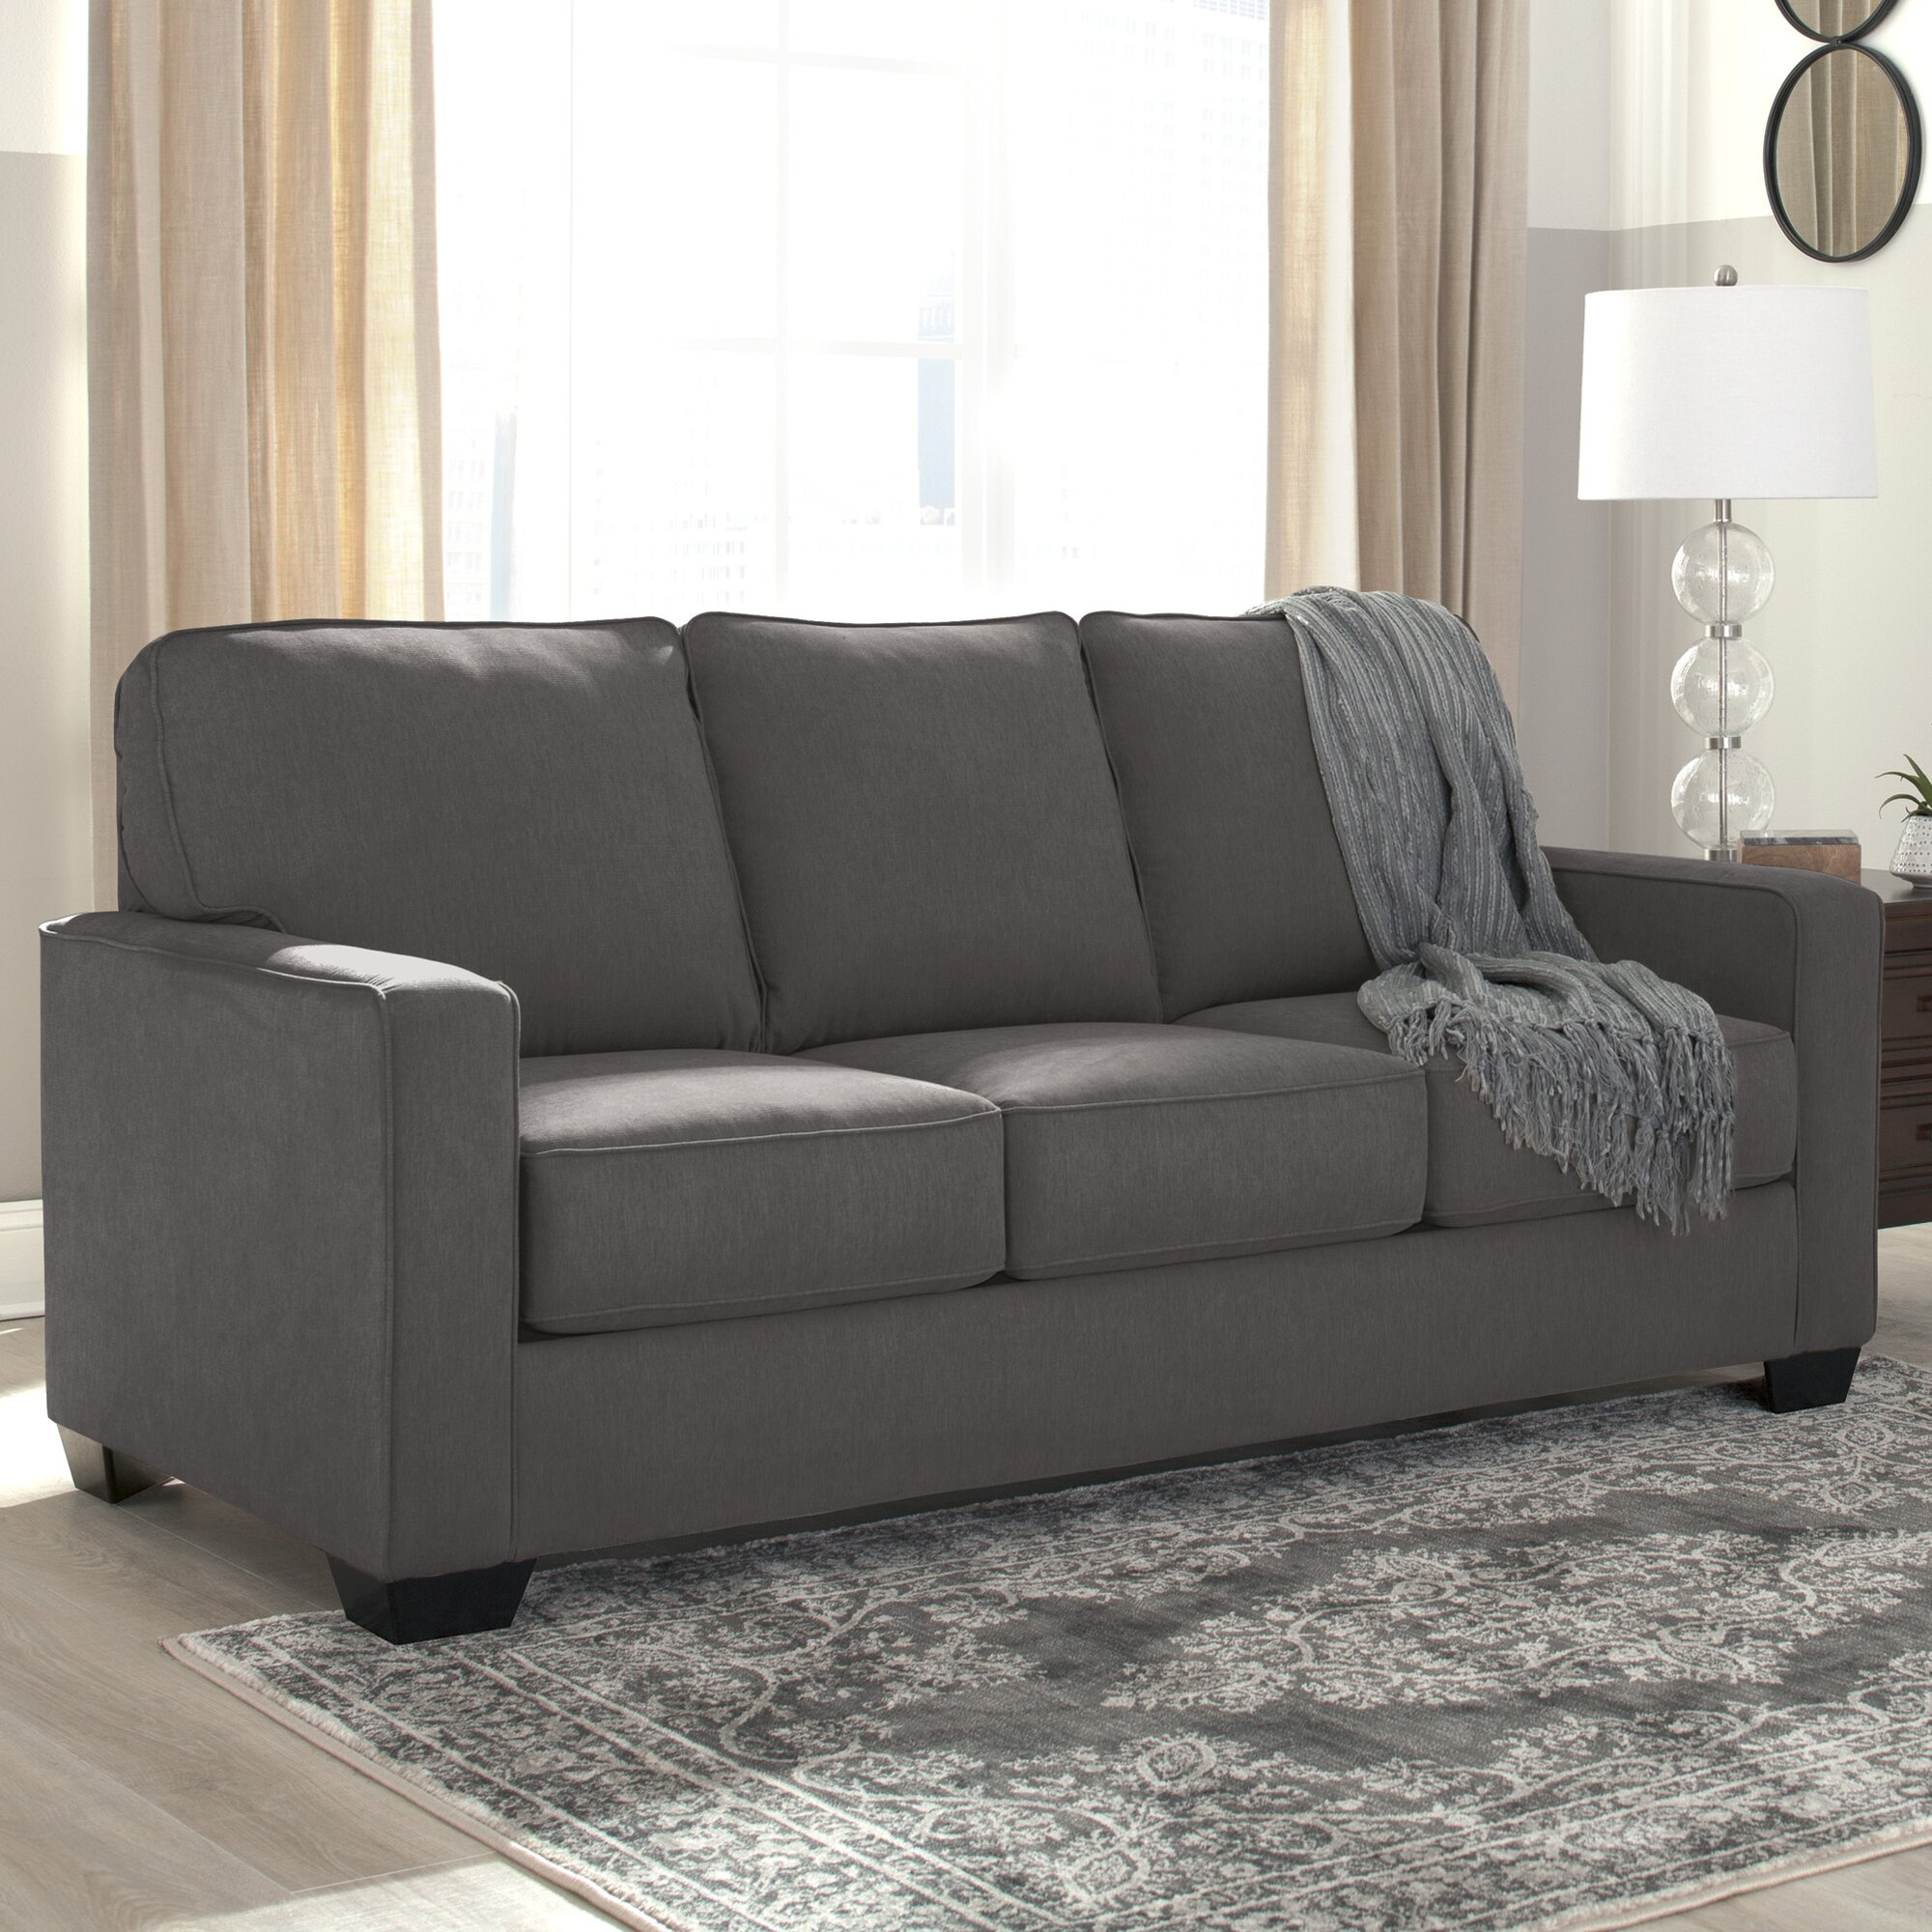 60 inch long sleeper sofa refil sofa for Sofa bed 60 inches